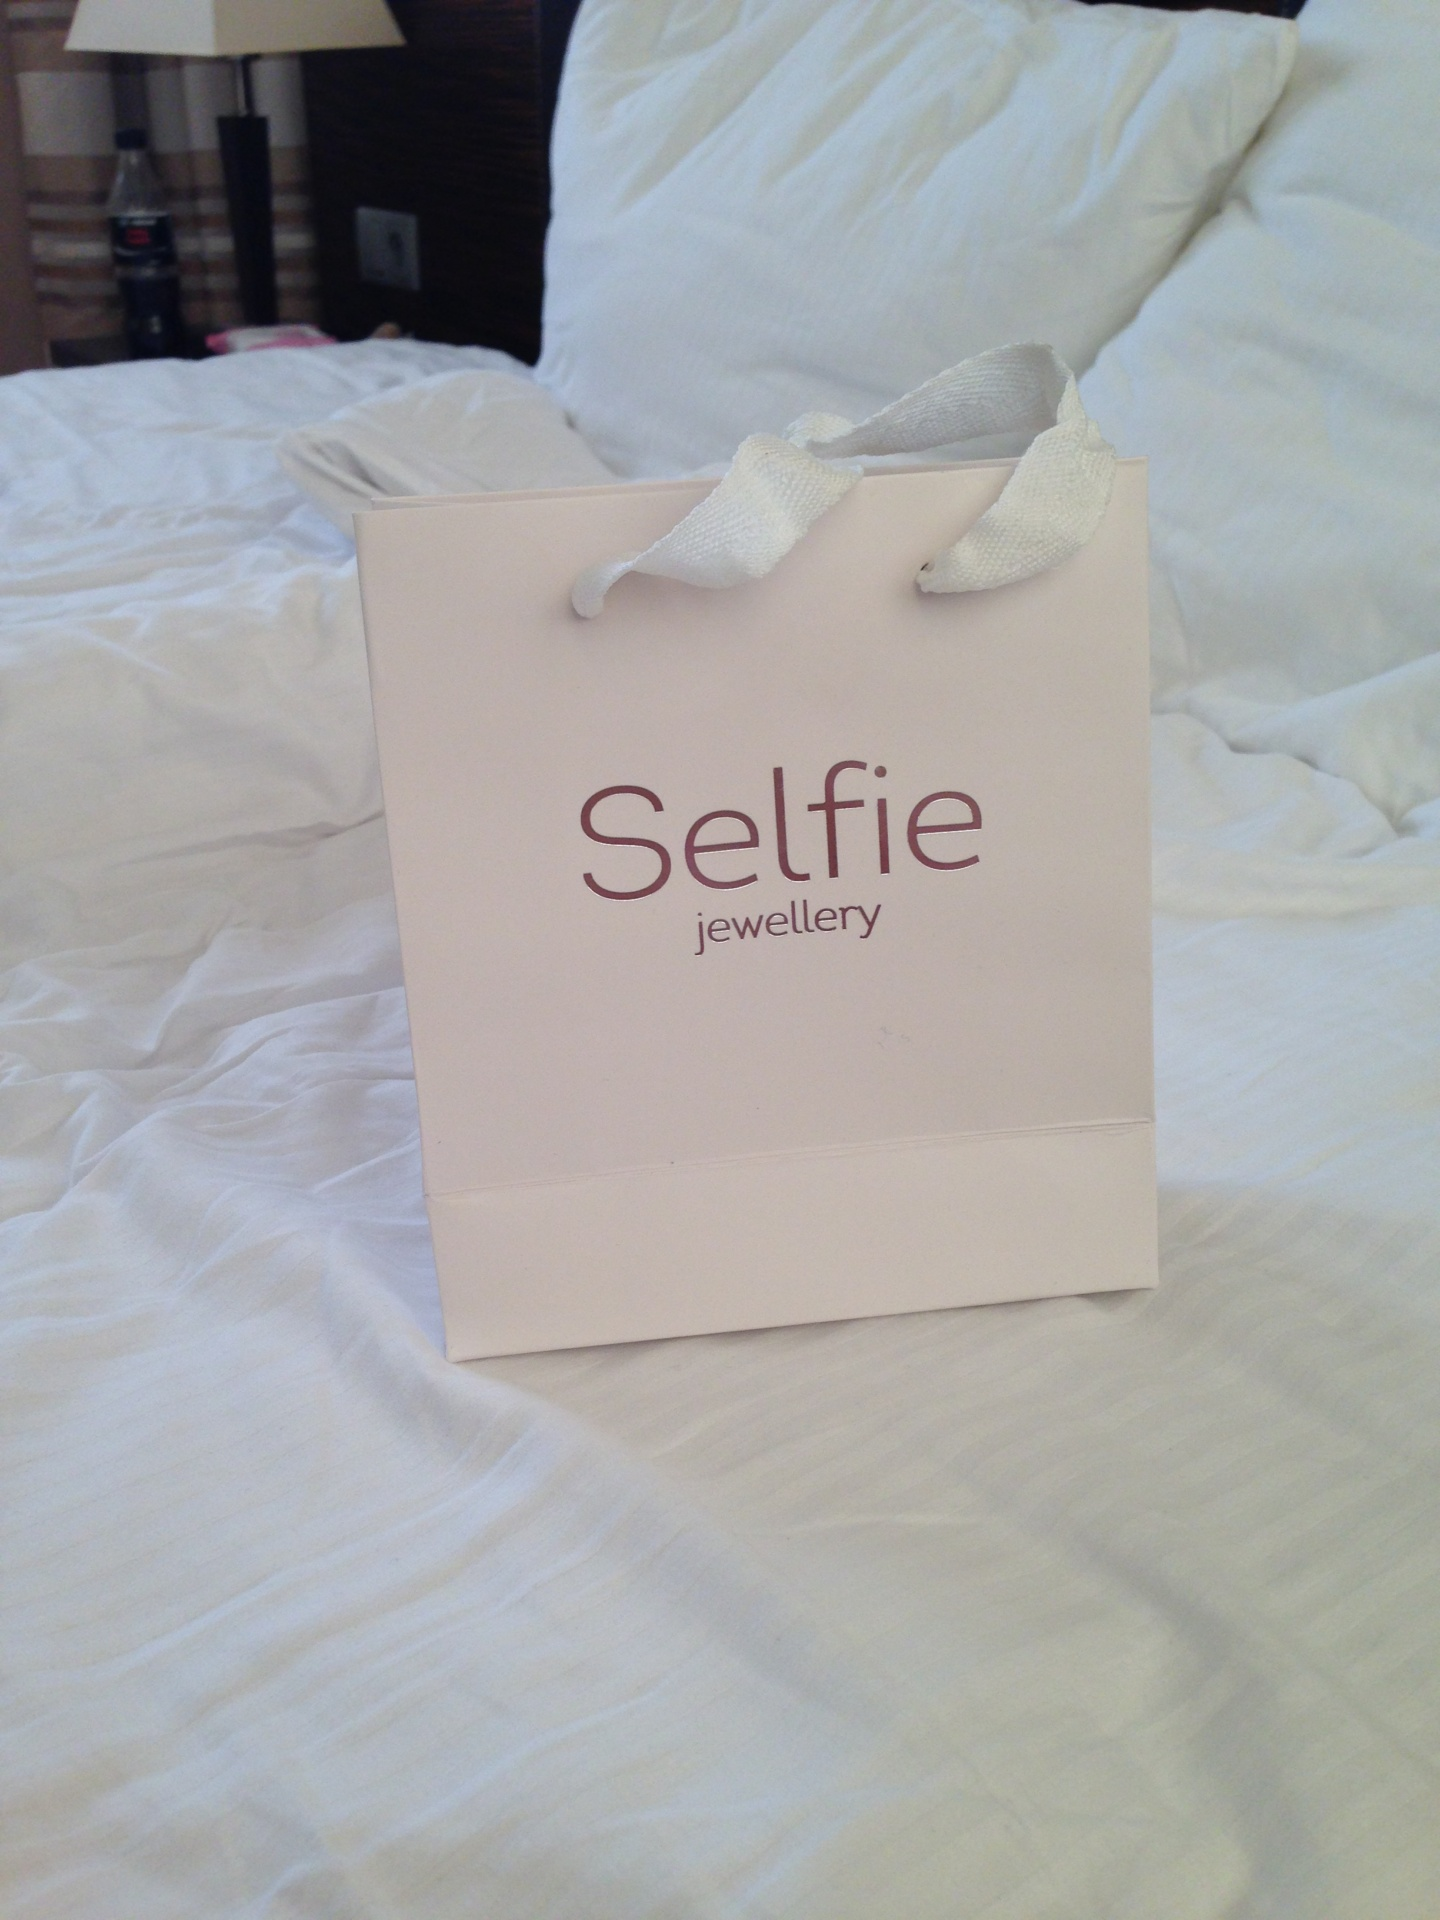 My cute purchase at selfie, Sopot